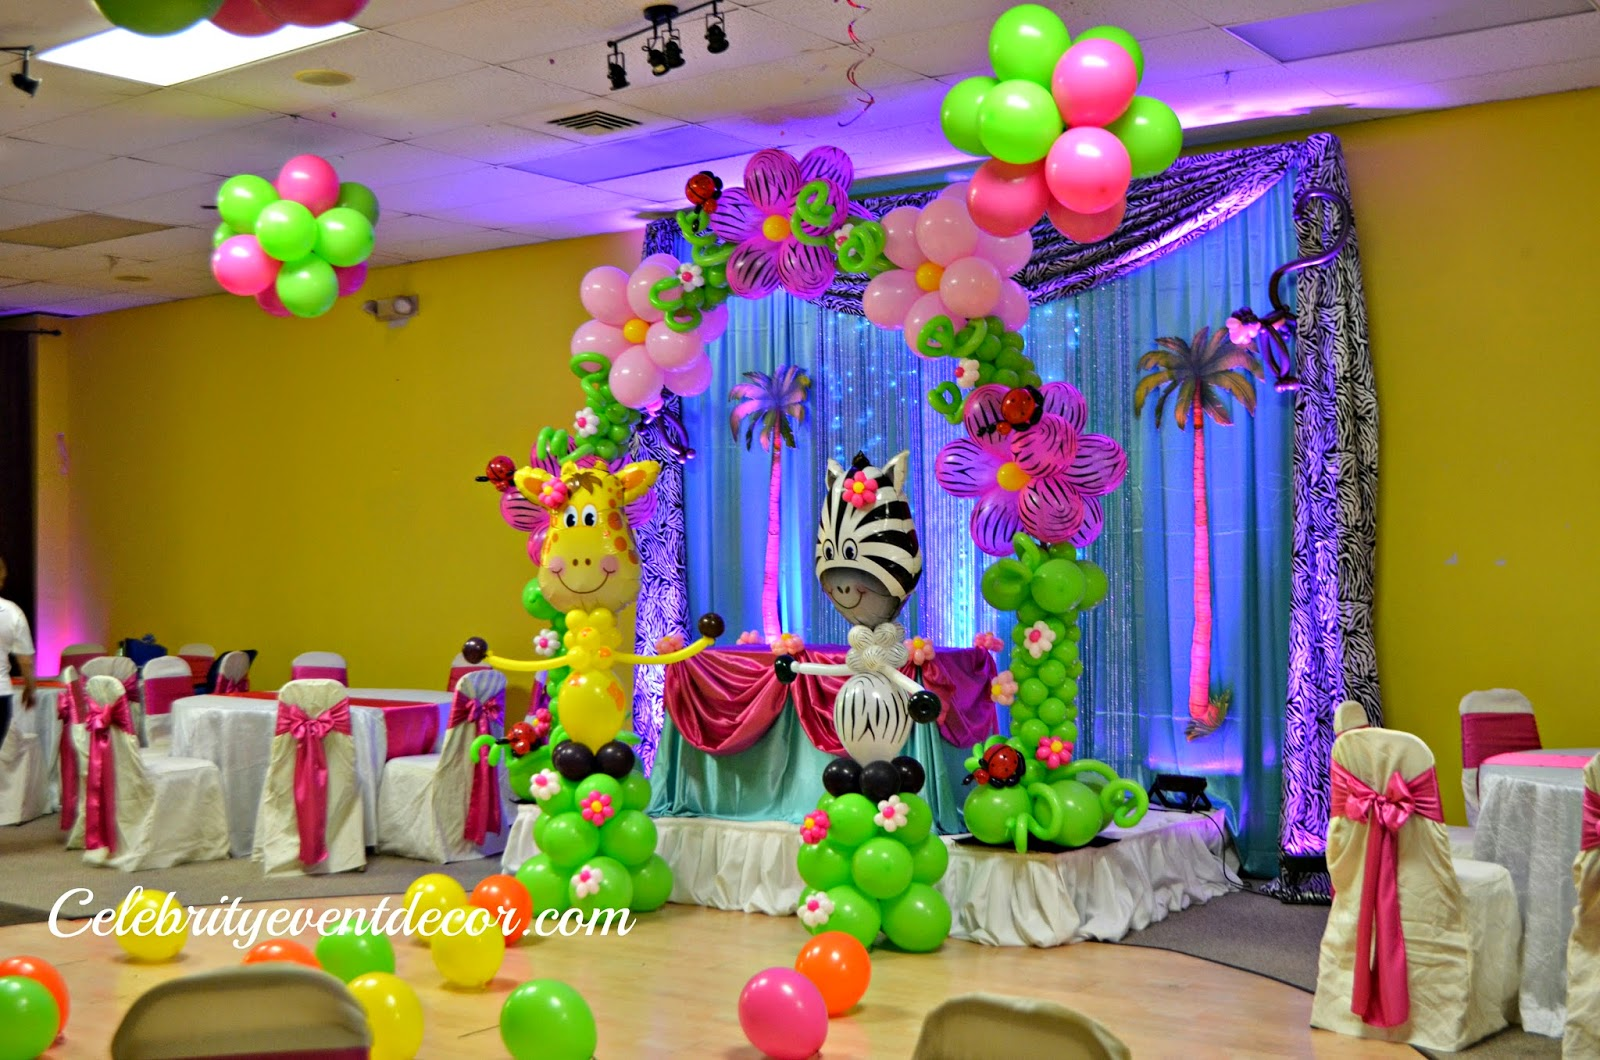 Celebrity event decor banquet hall llc for Baby shower hall decoration